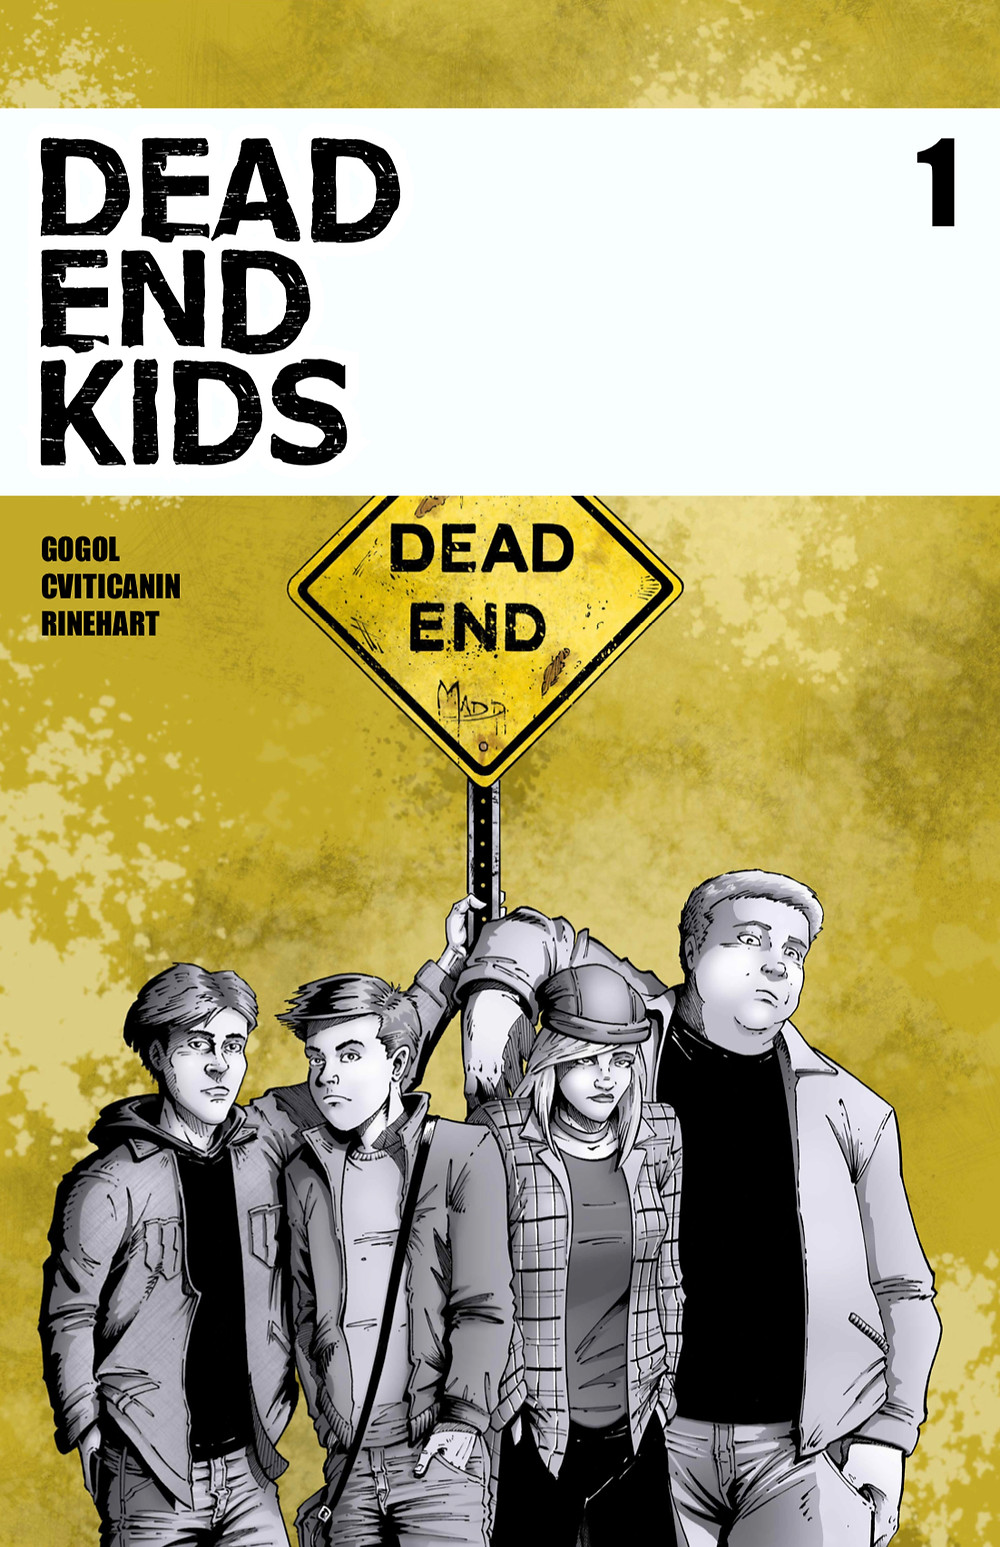 Dead End Kids, issue #1, cover, Source Point Press, Gogol/Cviticanin, cover by Criss Madd